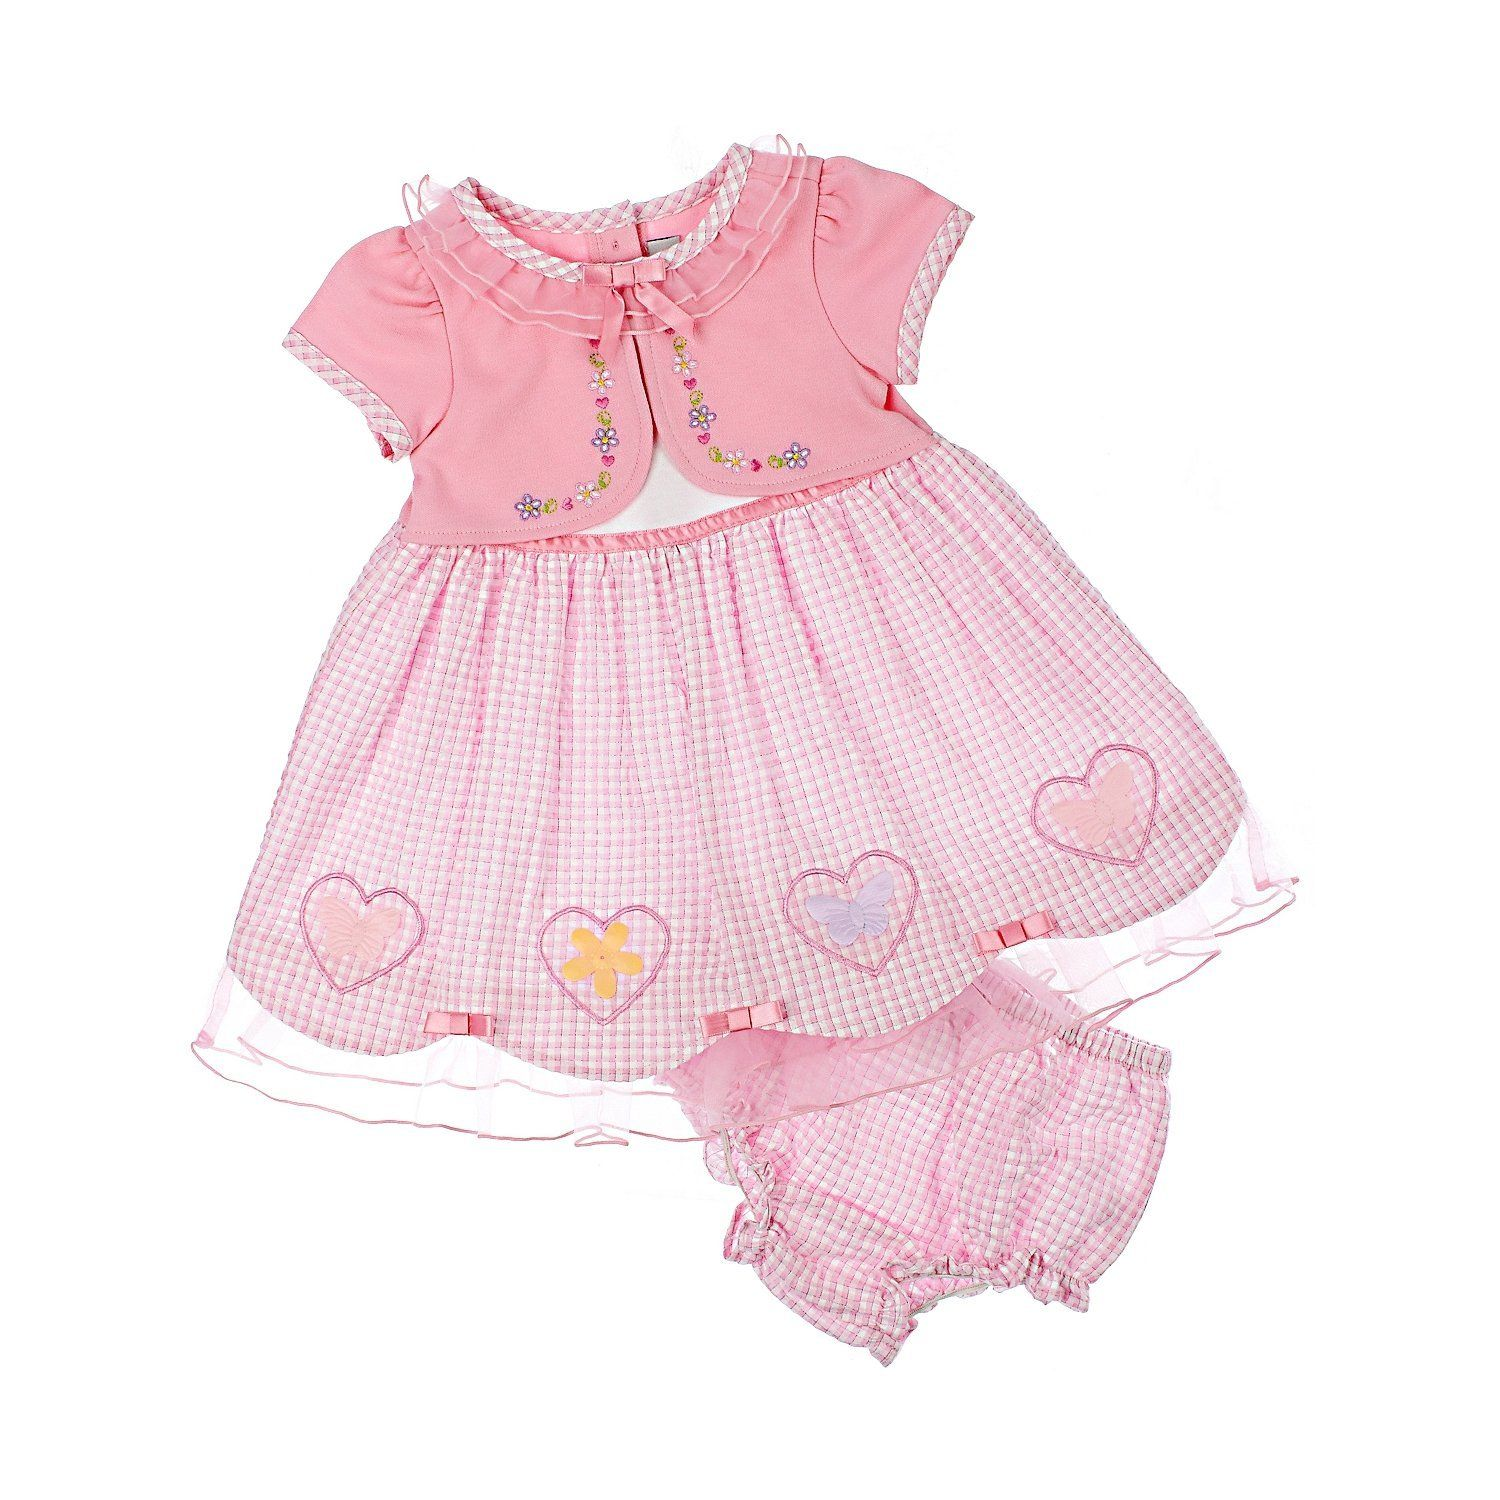 Youngland Baby Girls Pink Short Sleeve Ruffle Heart Cardigan Dress